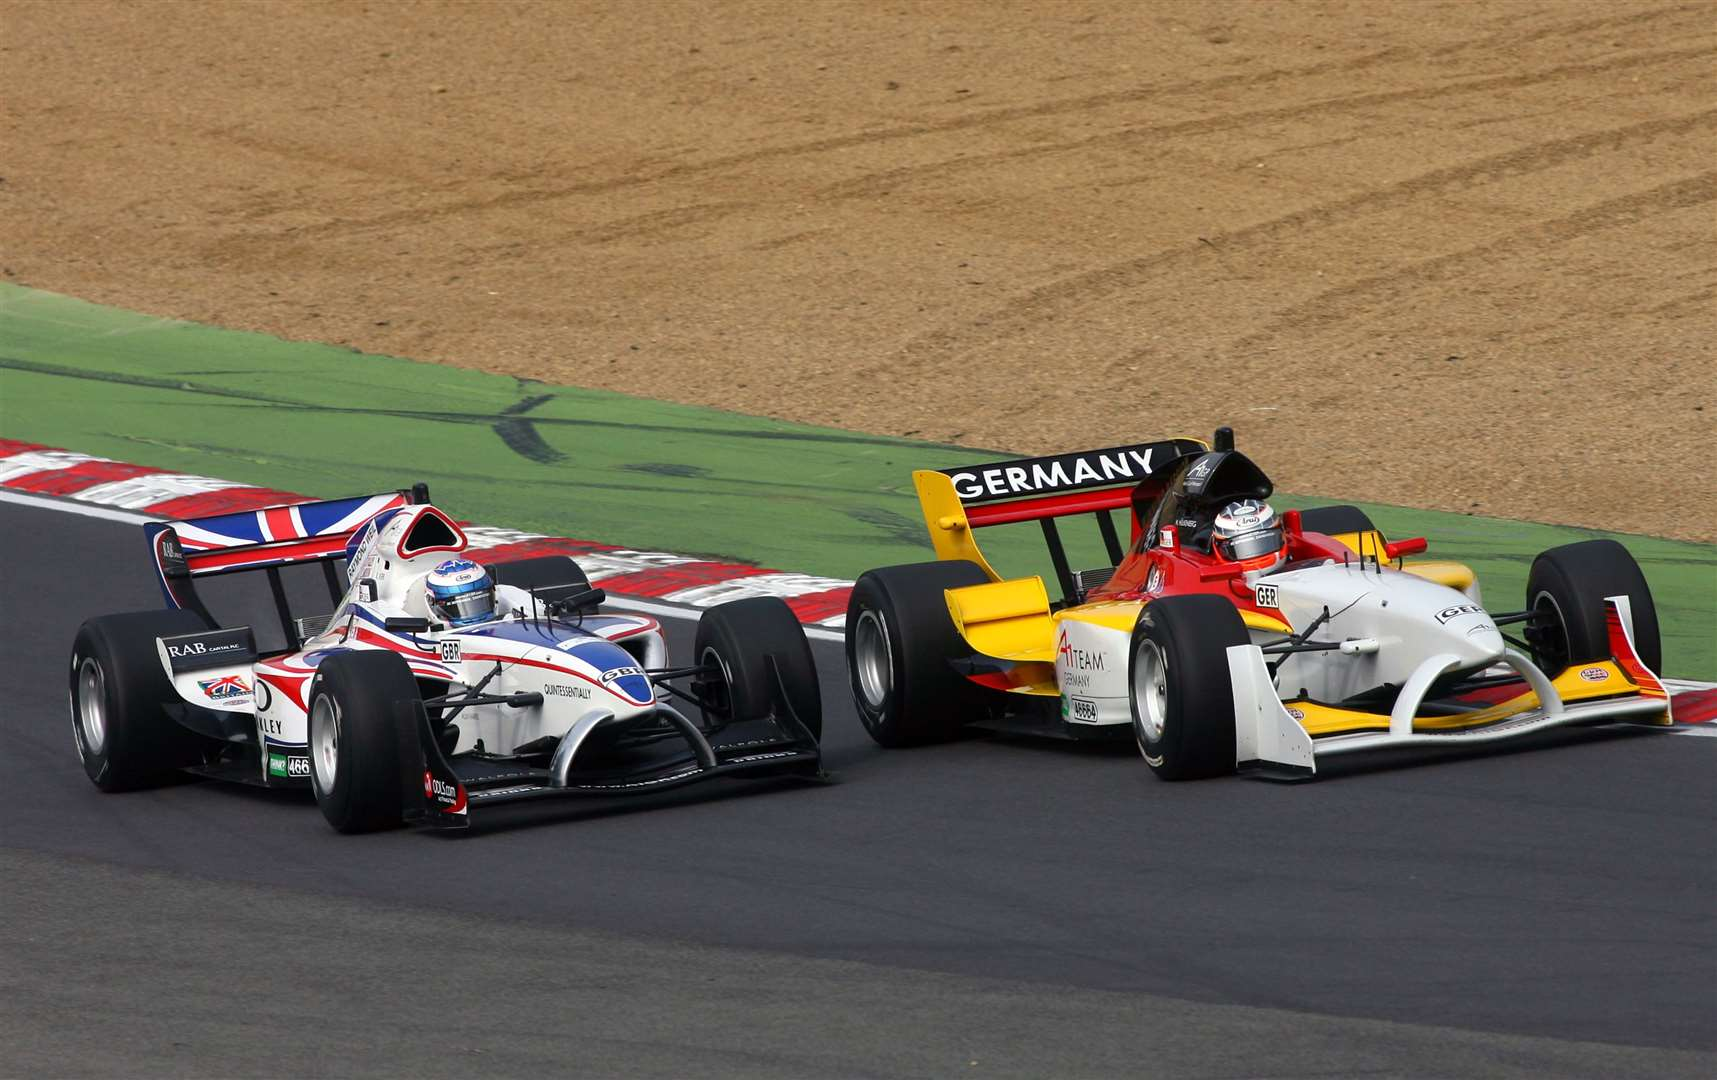 Team GB's Robbie Kerr goes wheel-to-wheel through Paddock Hill Bend with Germany's Nico Hulkenberg in 2007